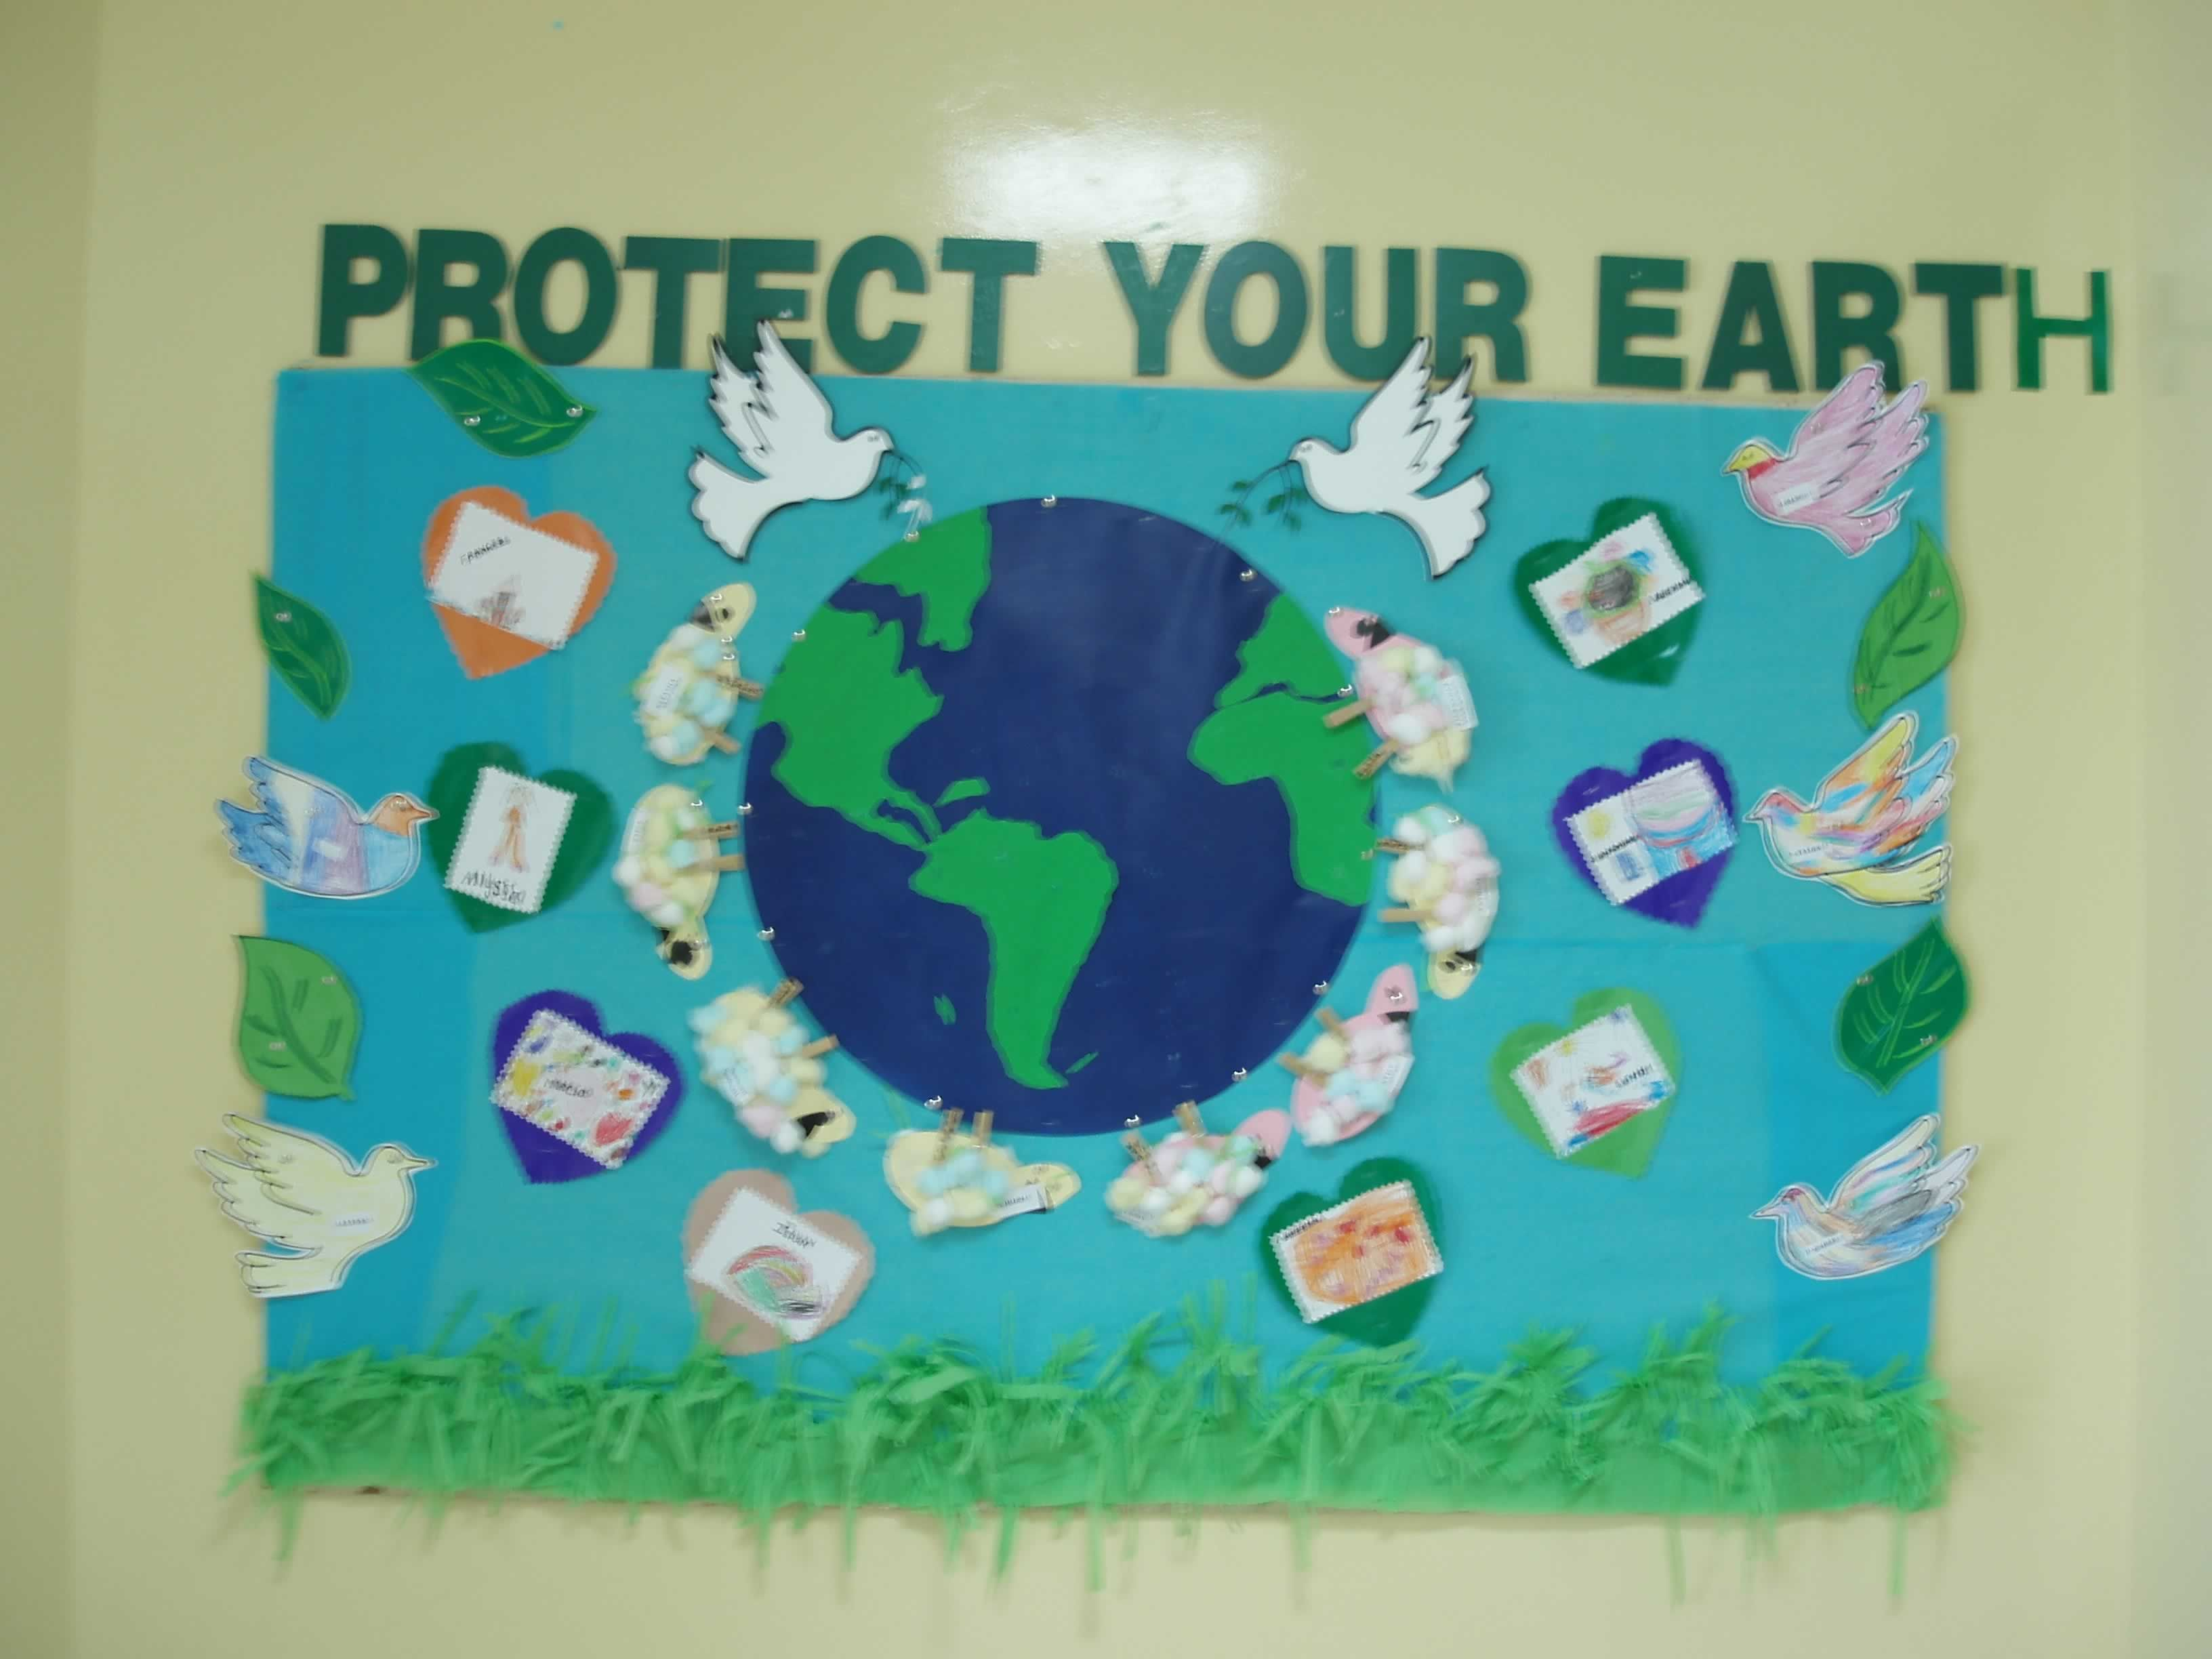 81 best images about Earth day on Pinterest | Recycling, Earth day ...